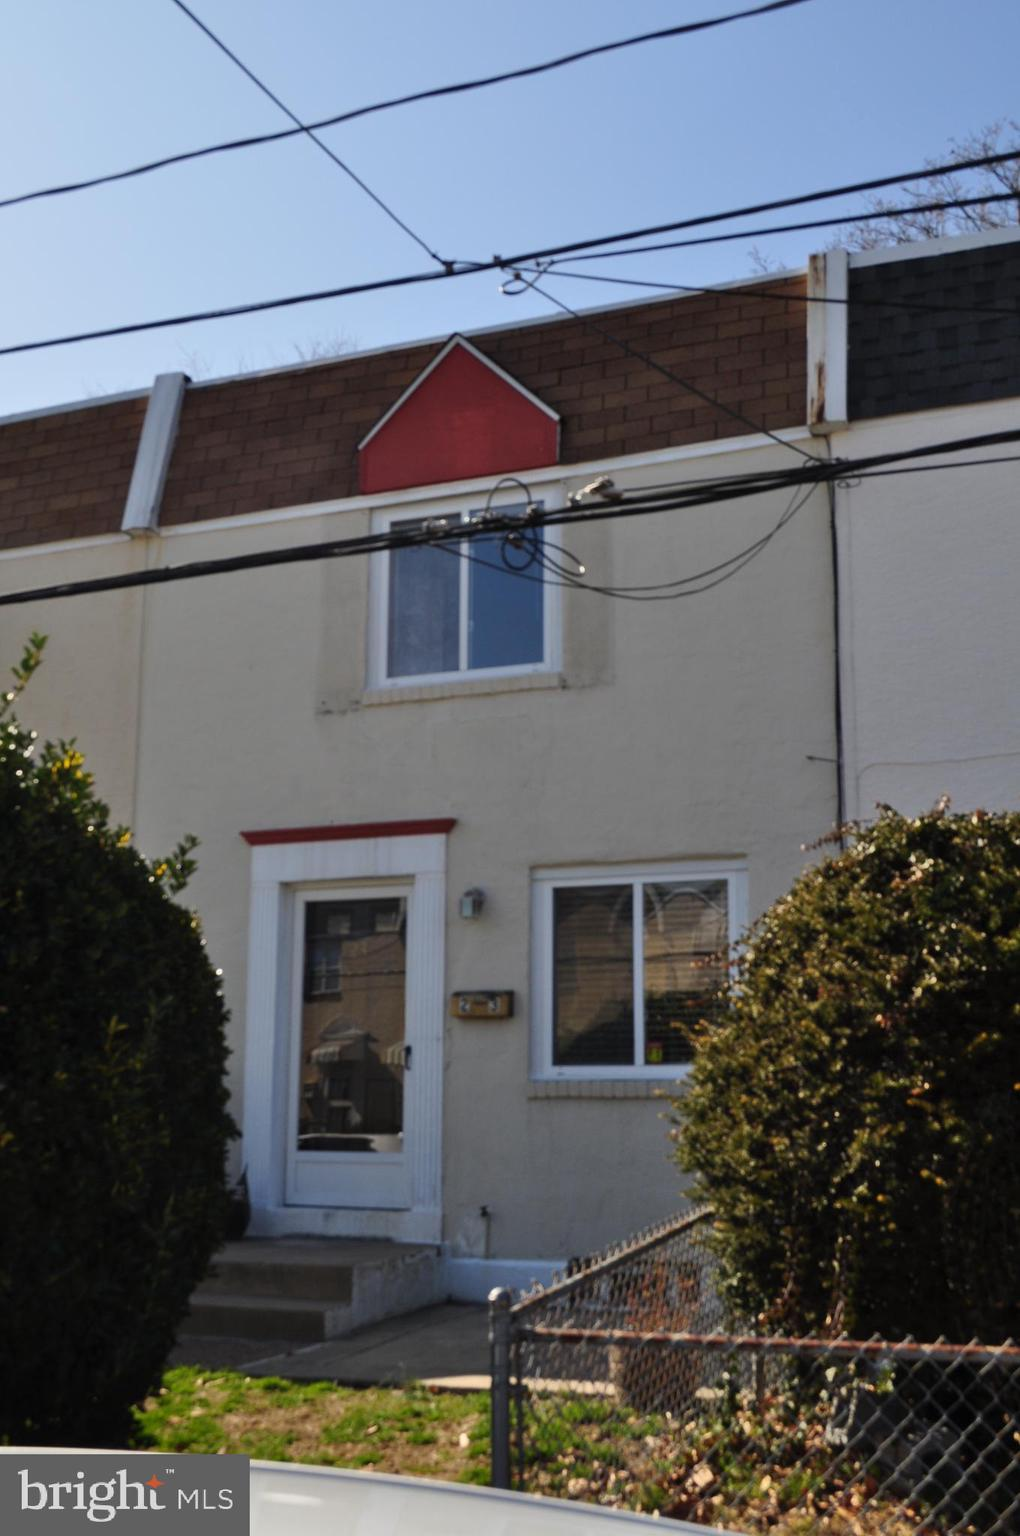 Great two bedroom row home with finished lower level and 1.5 bathrooms in the heart of Clifton Heights! Freshly painted interior and updated kitchen make this a turn key property perfect for the owner occupant or for the investor looking to add to their rental portfolio!